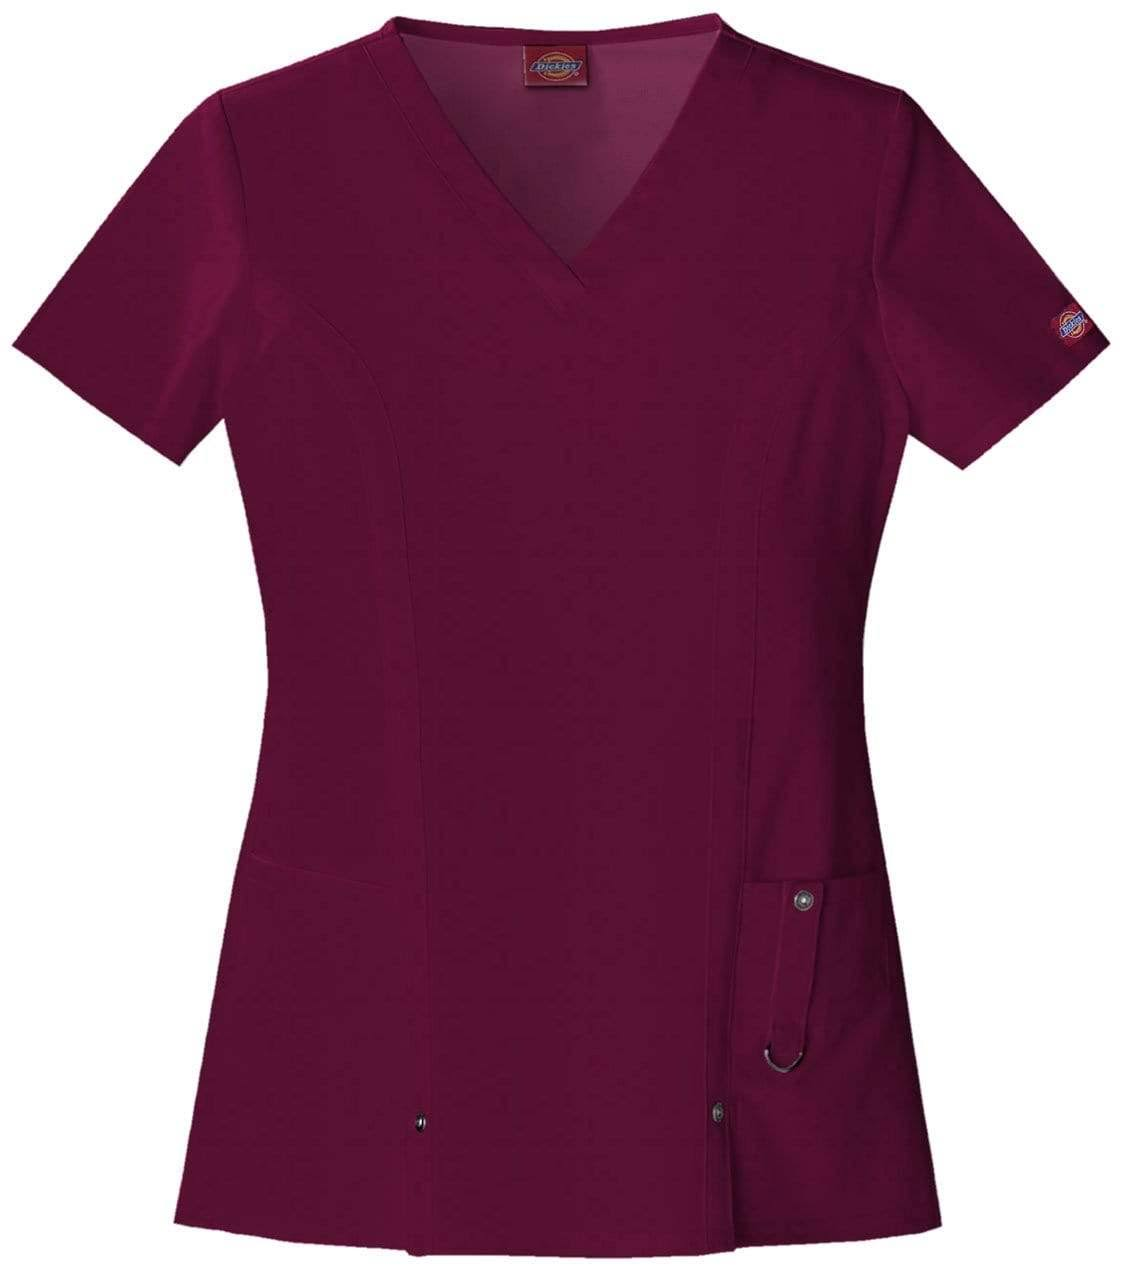 Dickies Women's V Neck Solid Scrub Top - Purple, 2X-Large